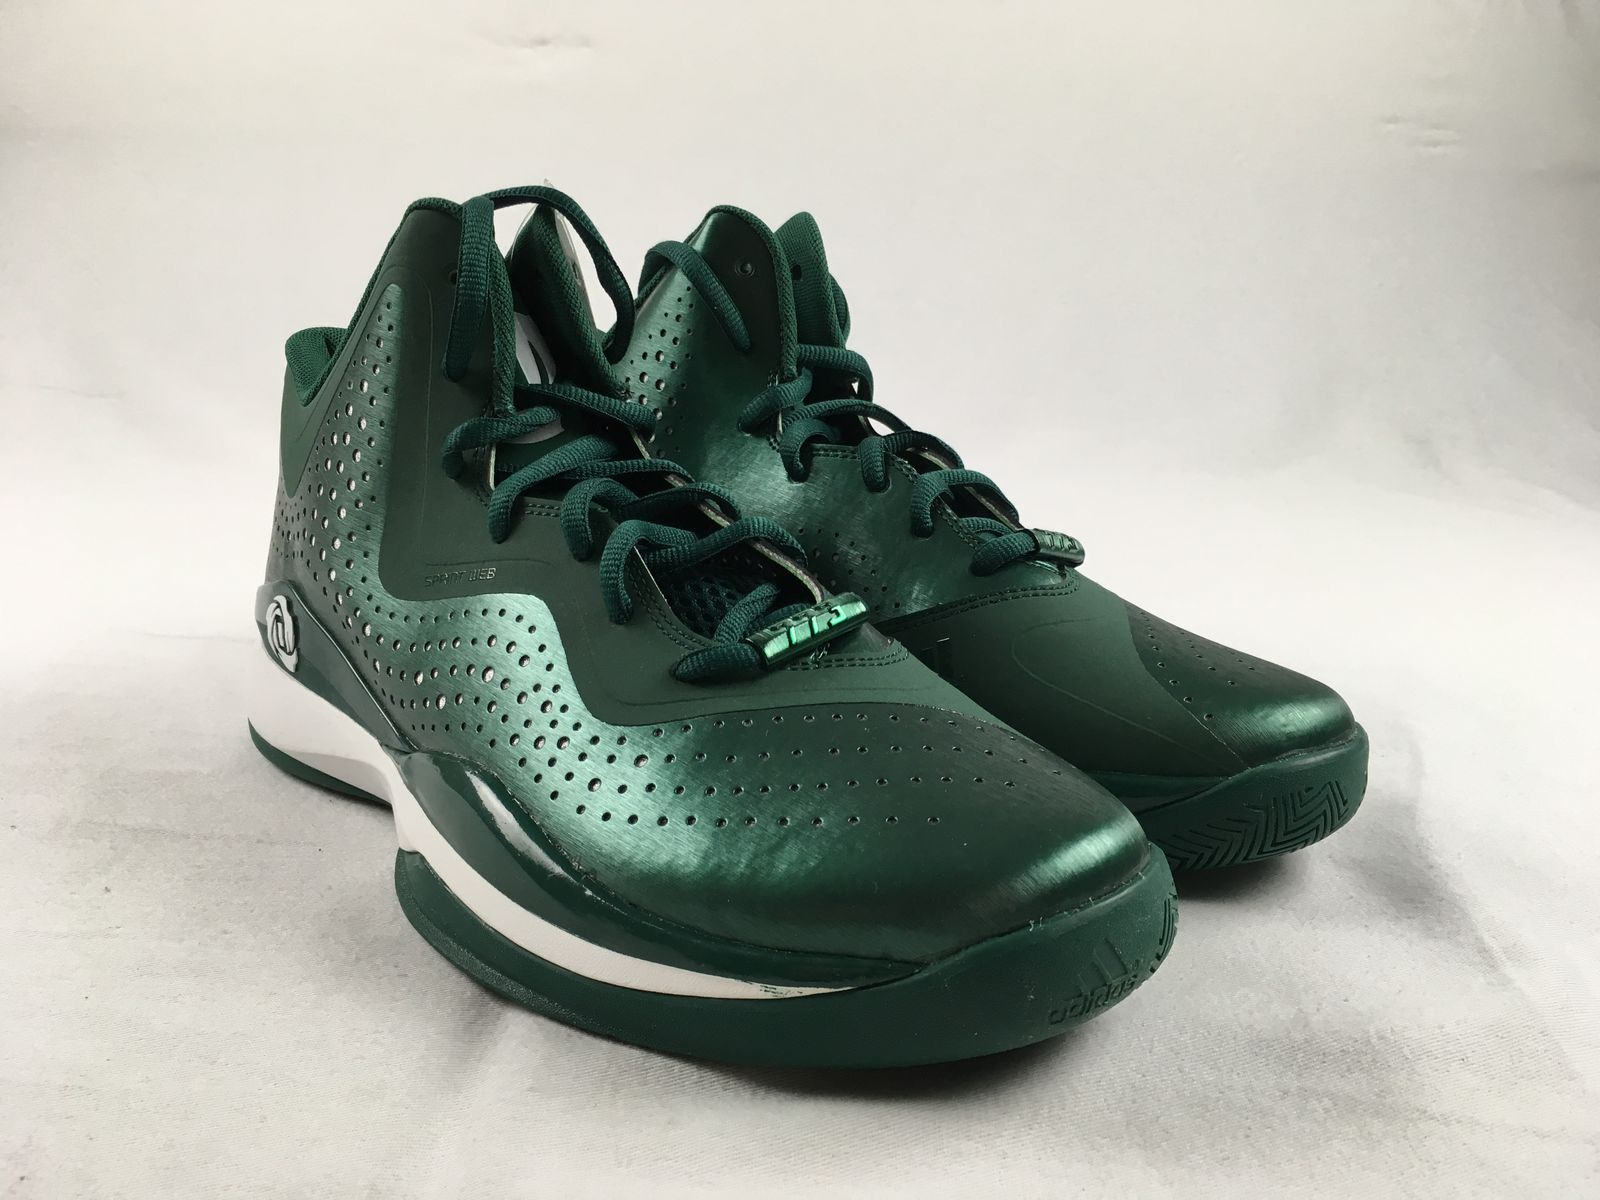 best service 5c724 609b5 Details about NEW adidas D Rose 773 III - Green Basketball Shoes (Men s  Multiple Sizes)